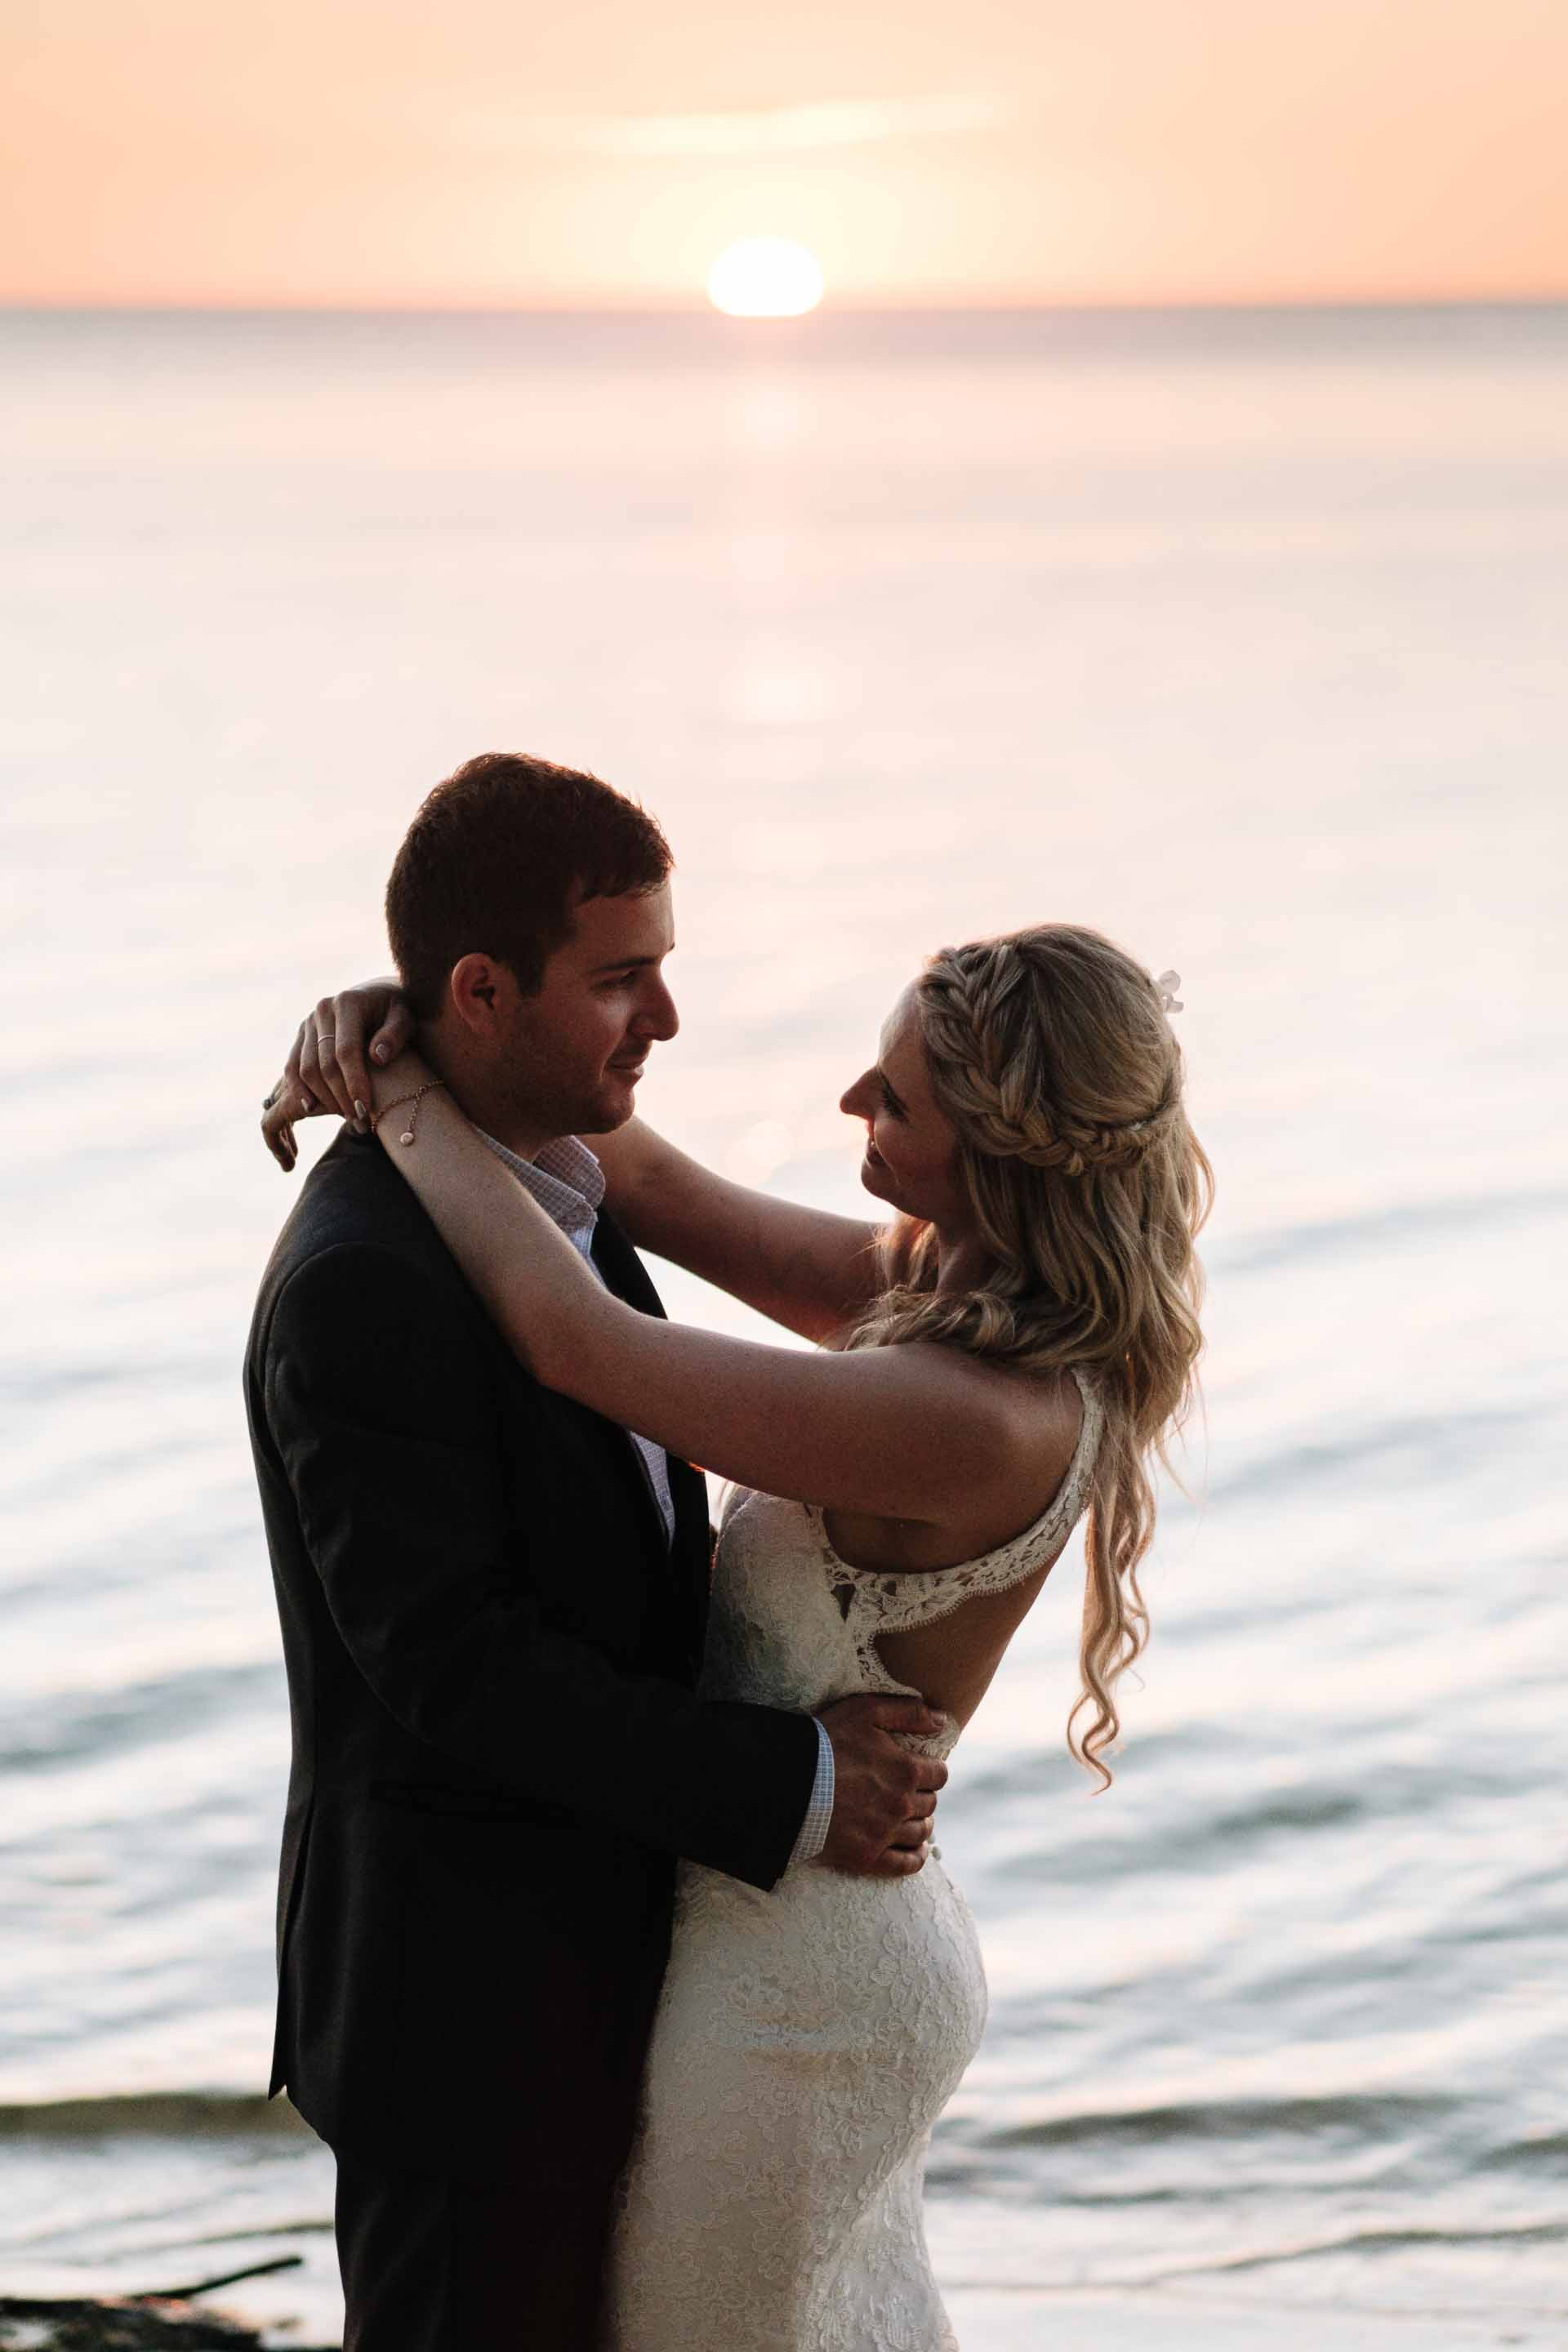 the bride and groom hold each other as the sun is about to dip behind the horizon